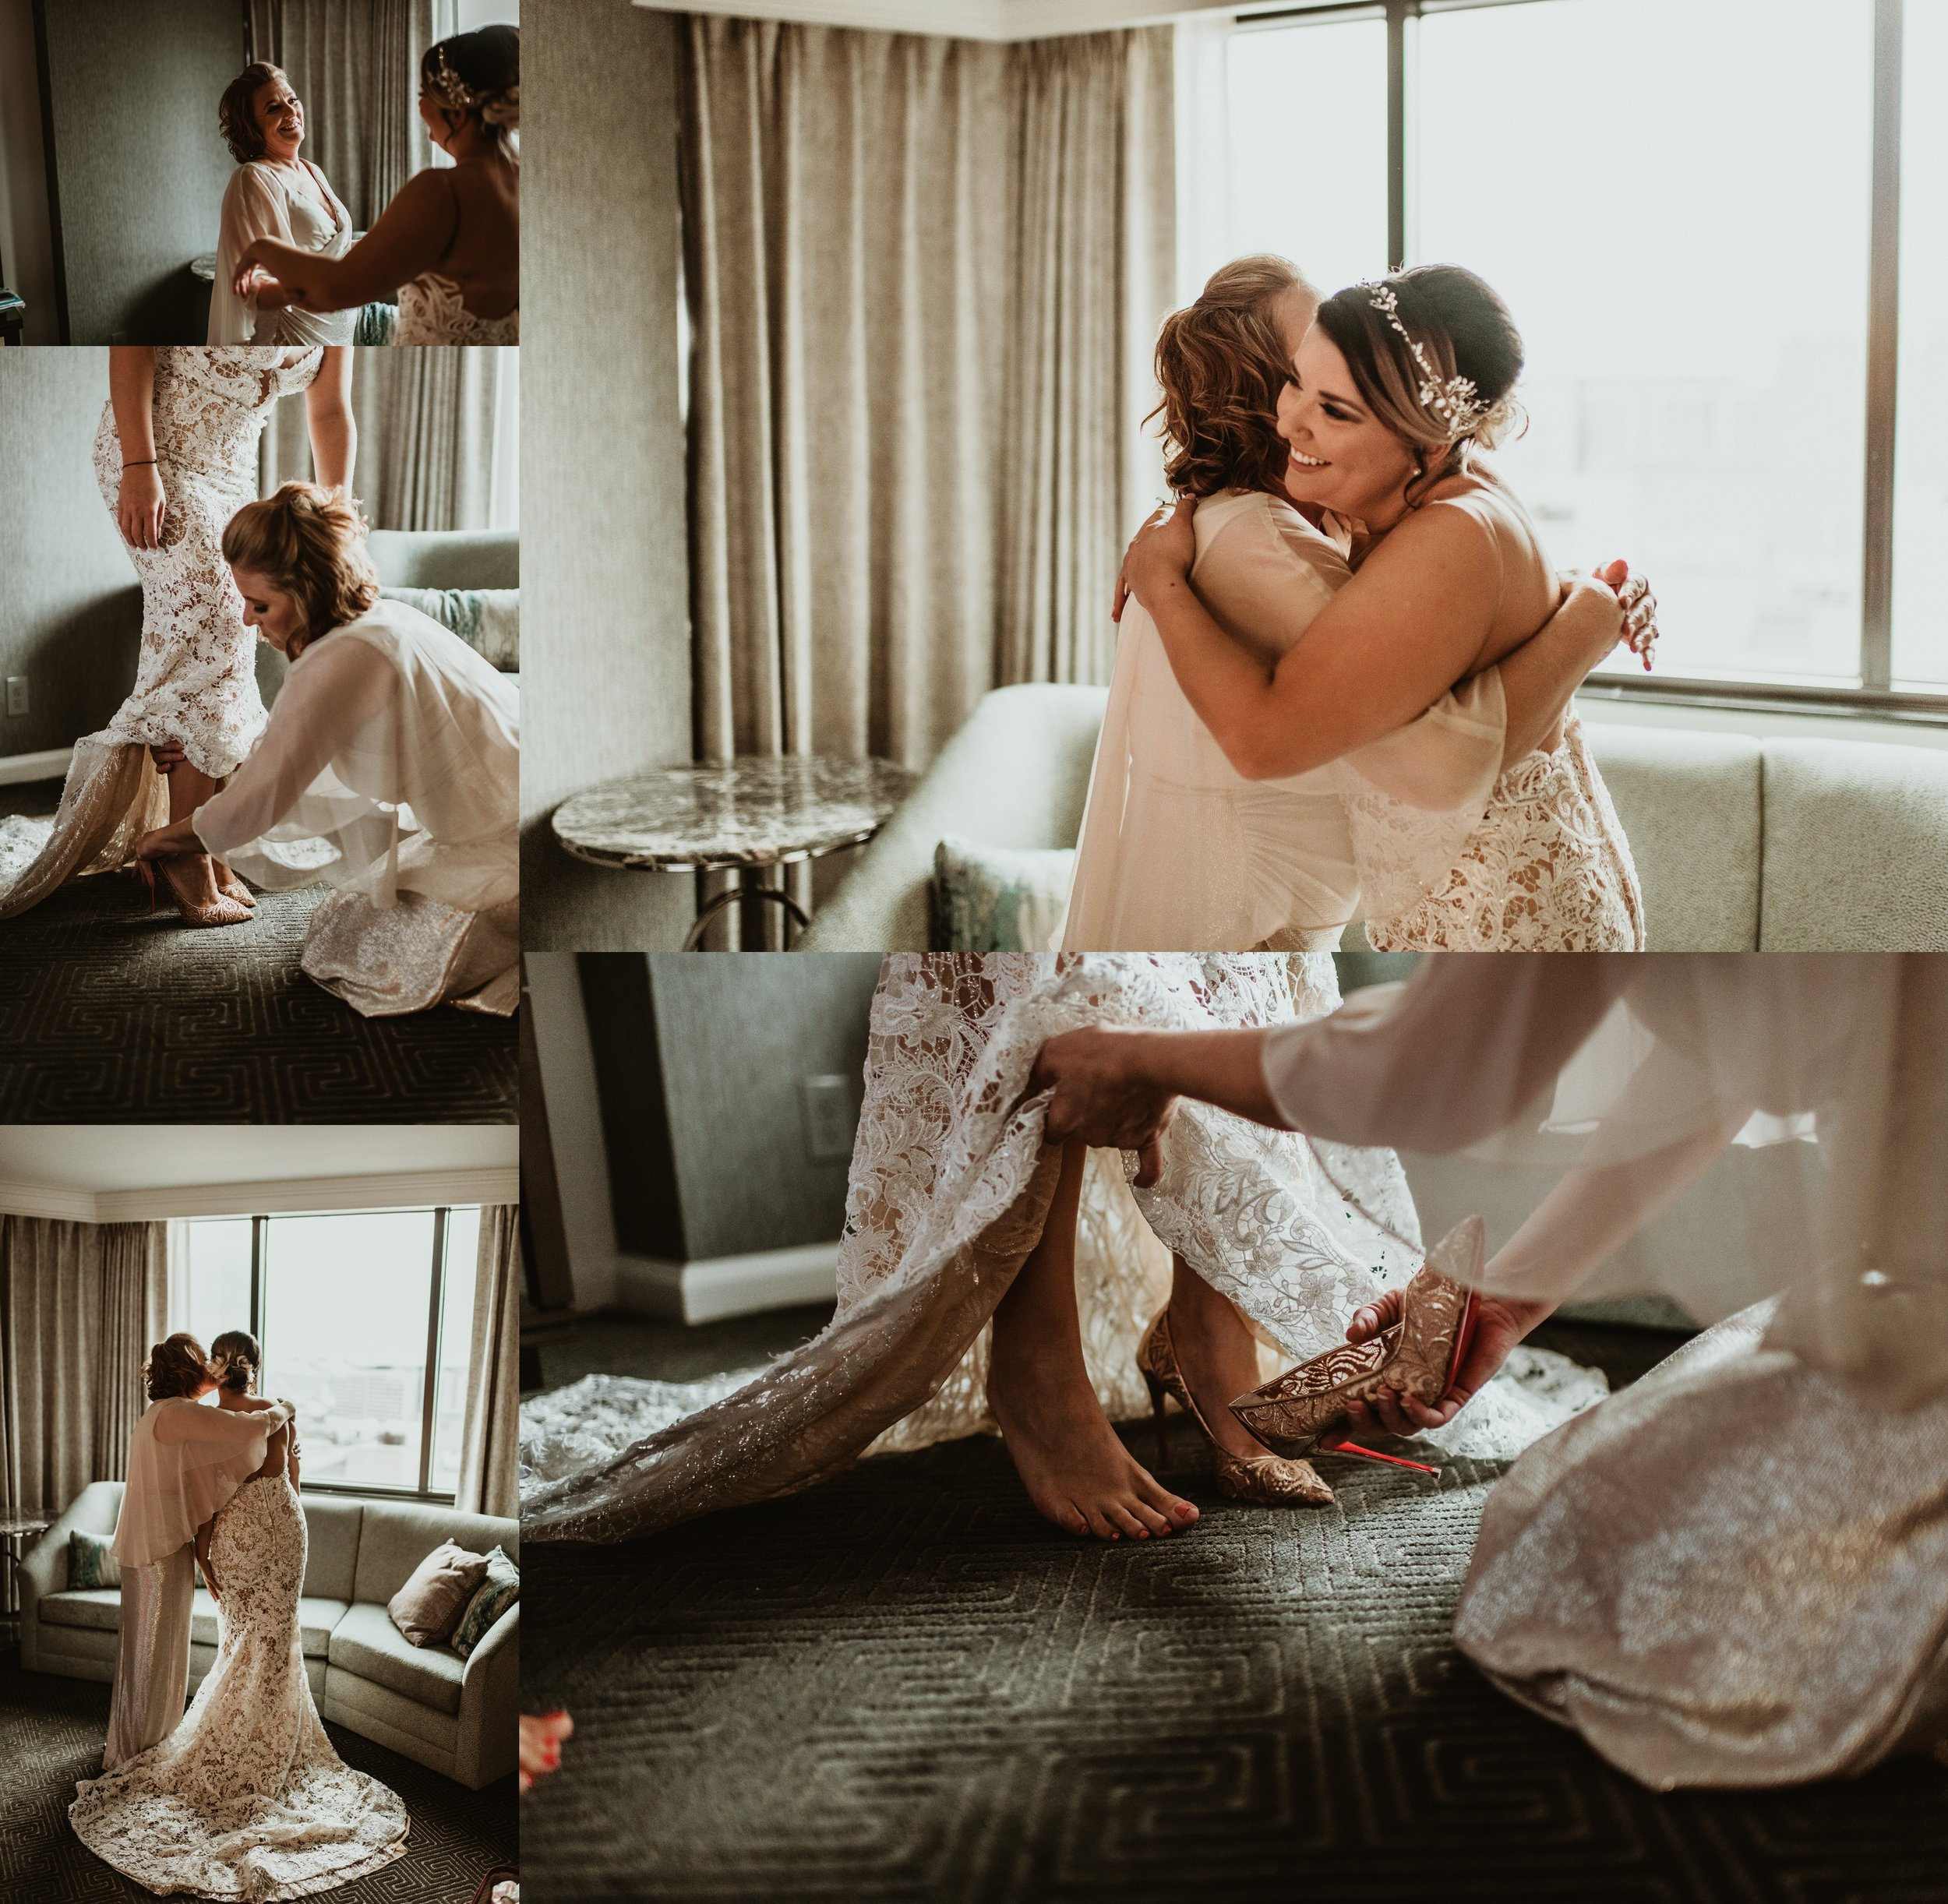 Classic Vintage Wedding | Ritz Carlton Atlanta, Georgia | Terry Farms Photography | Wedding Mother Daughter Getting Ready Photo